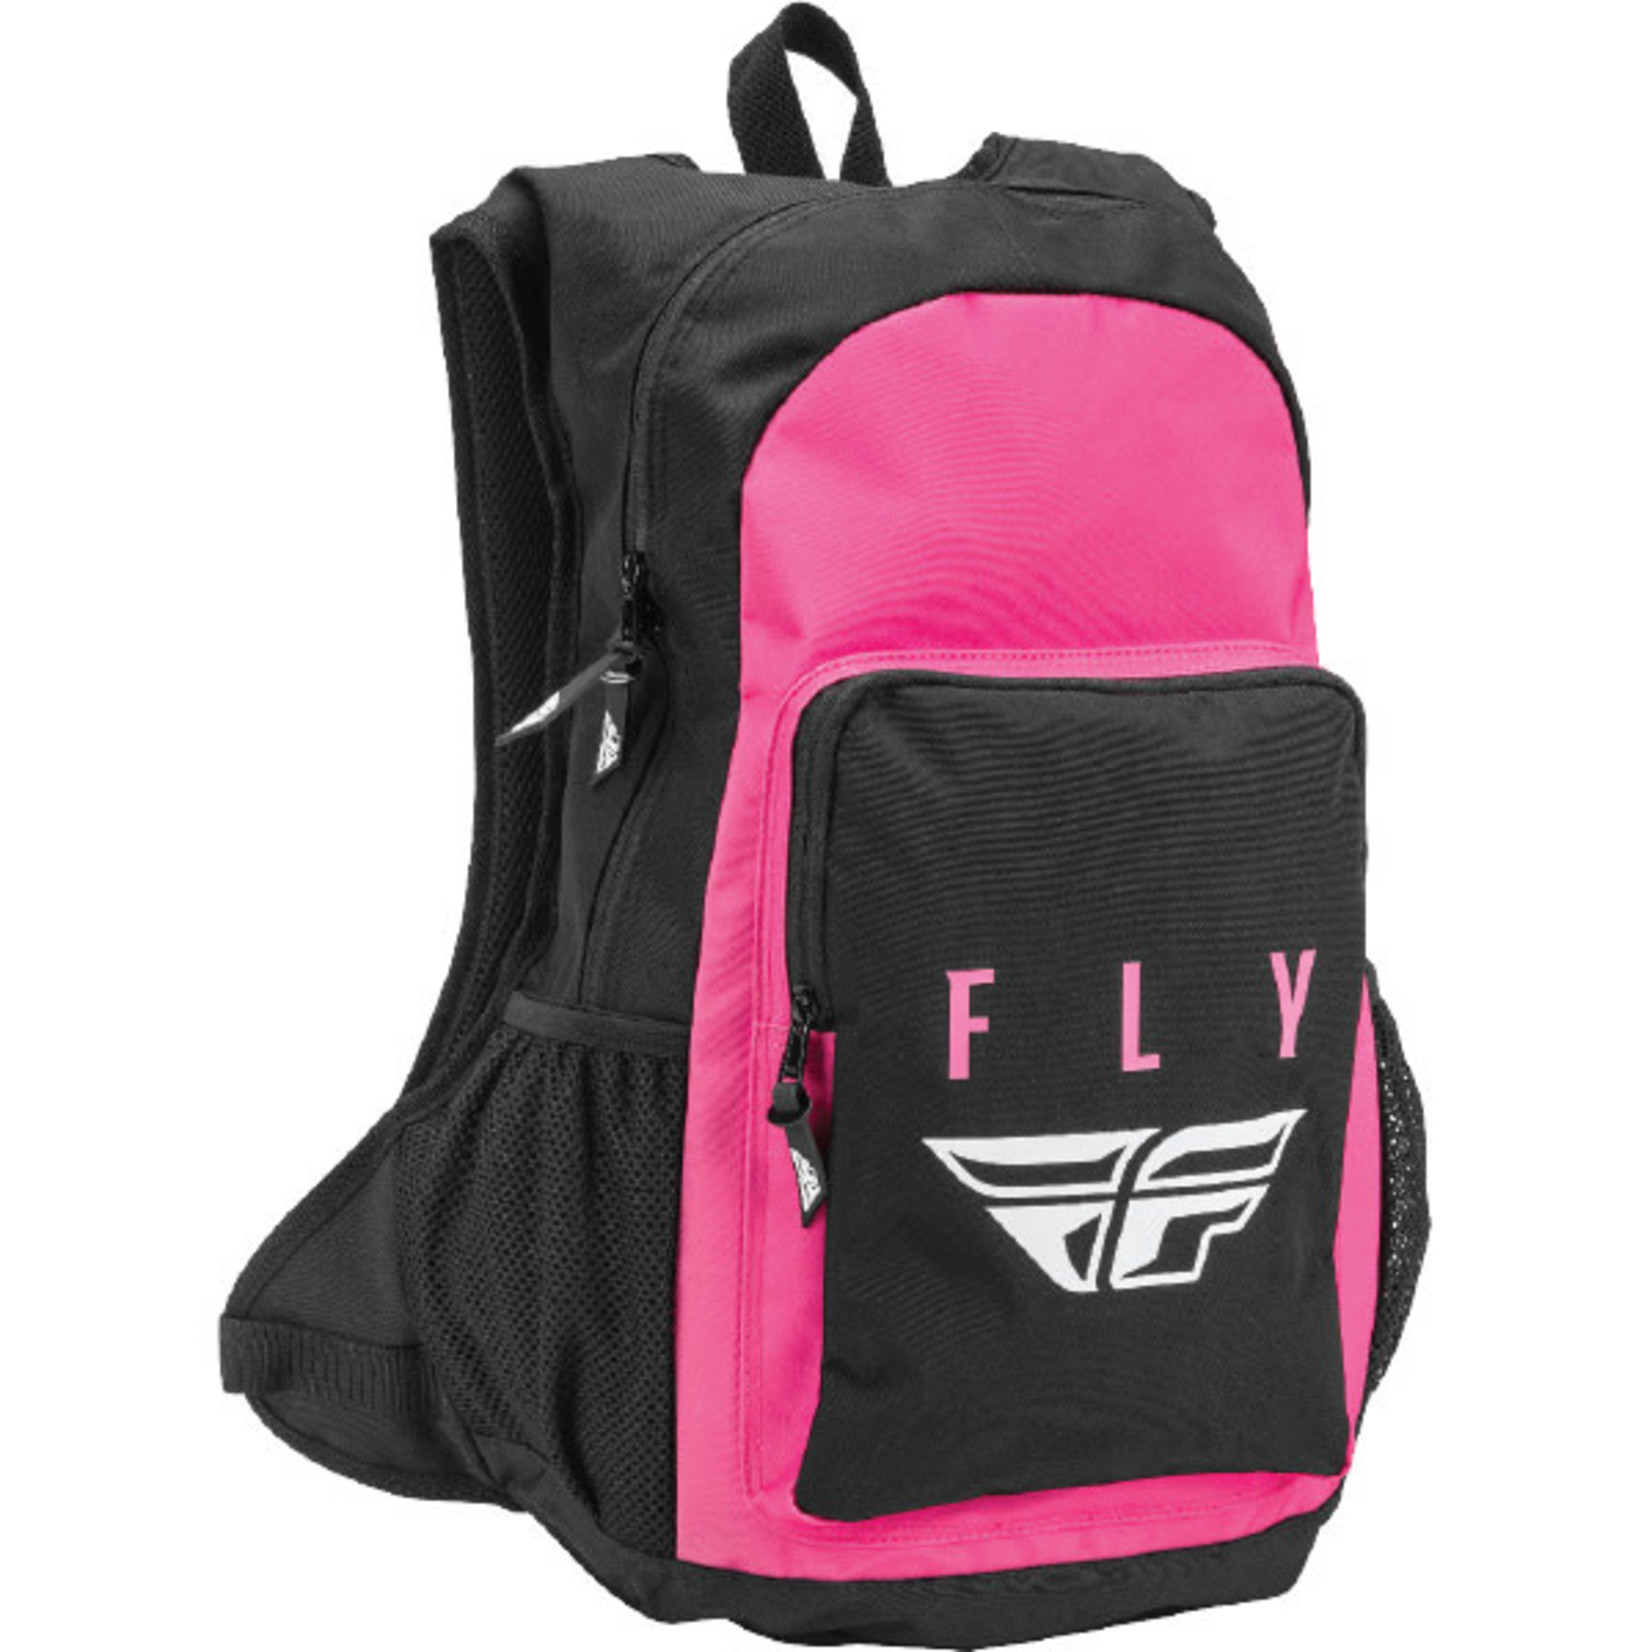 Fly Fly Jump Pack